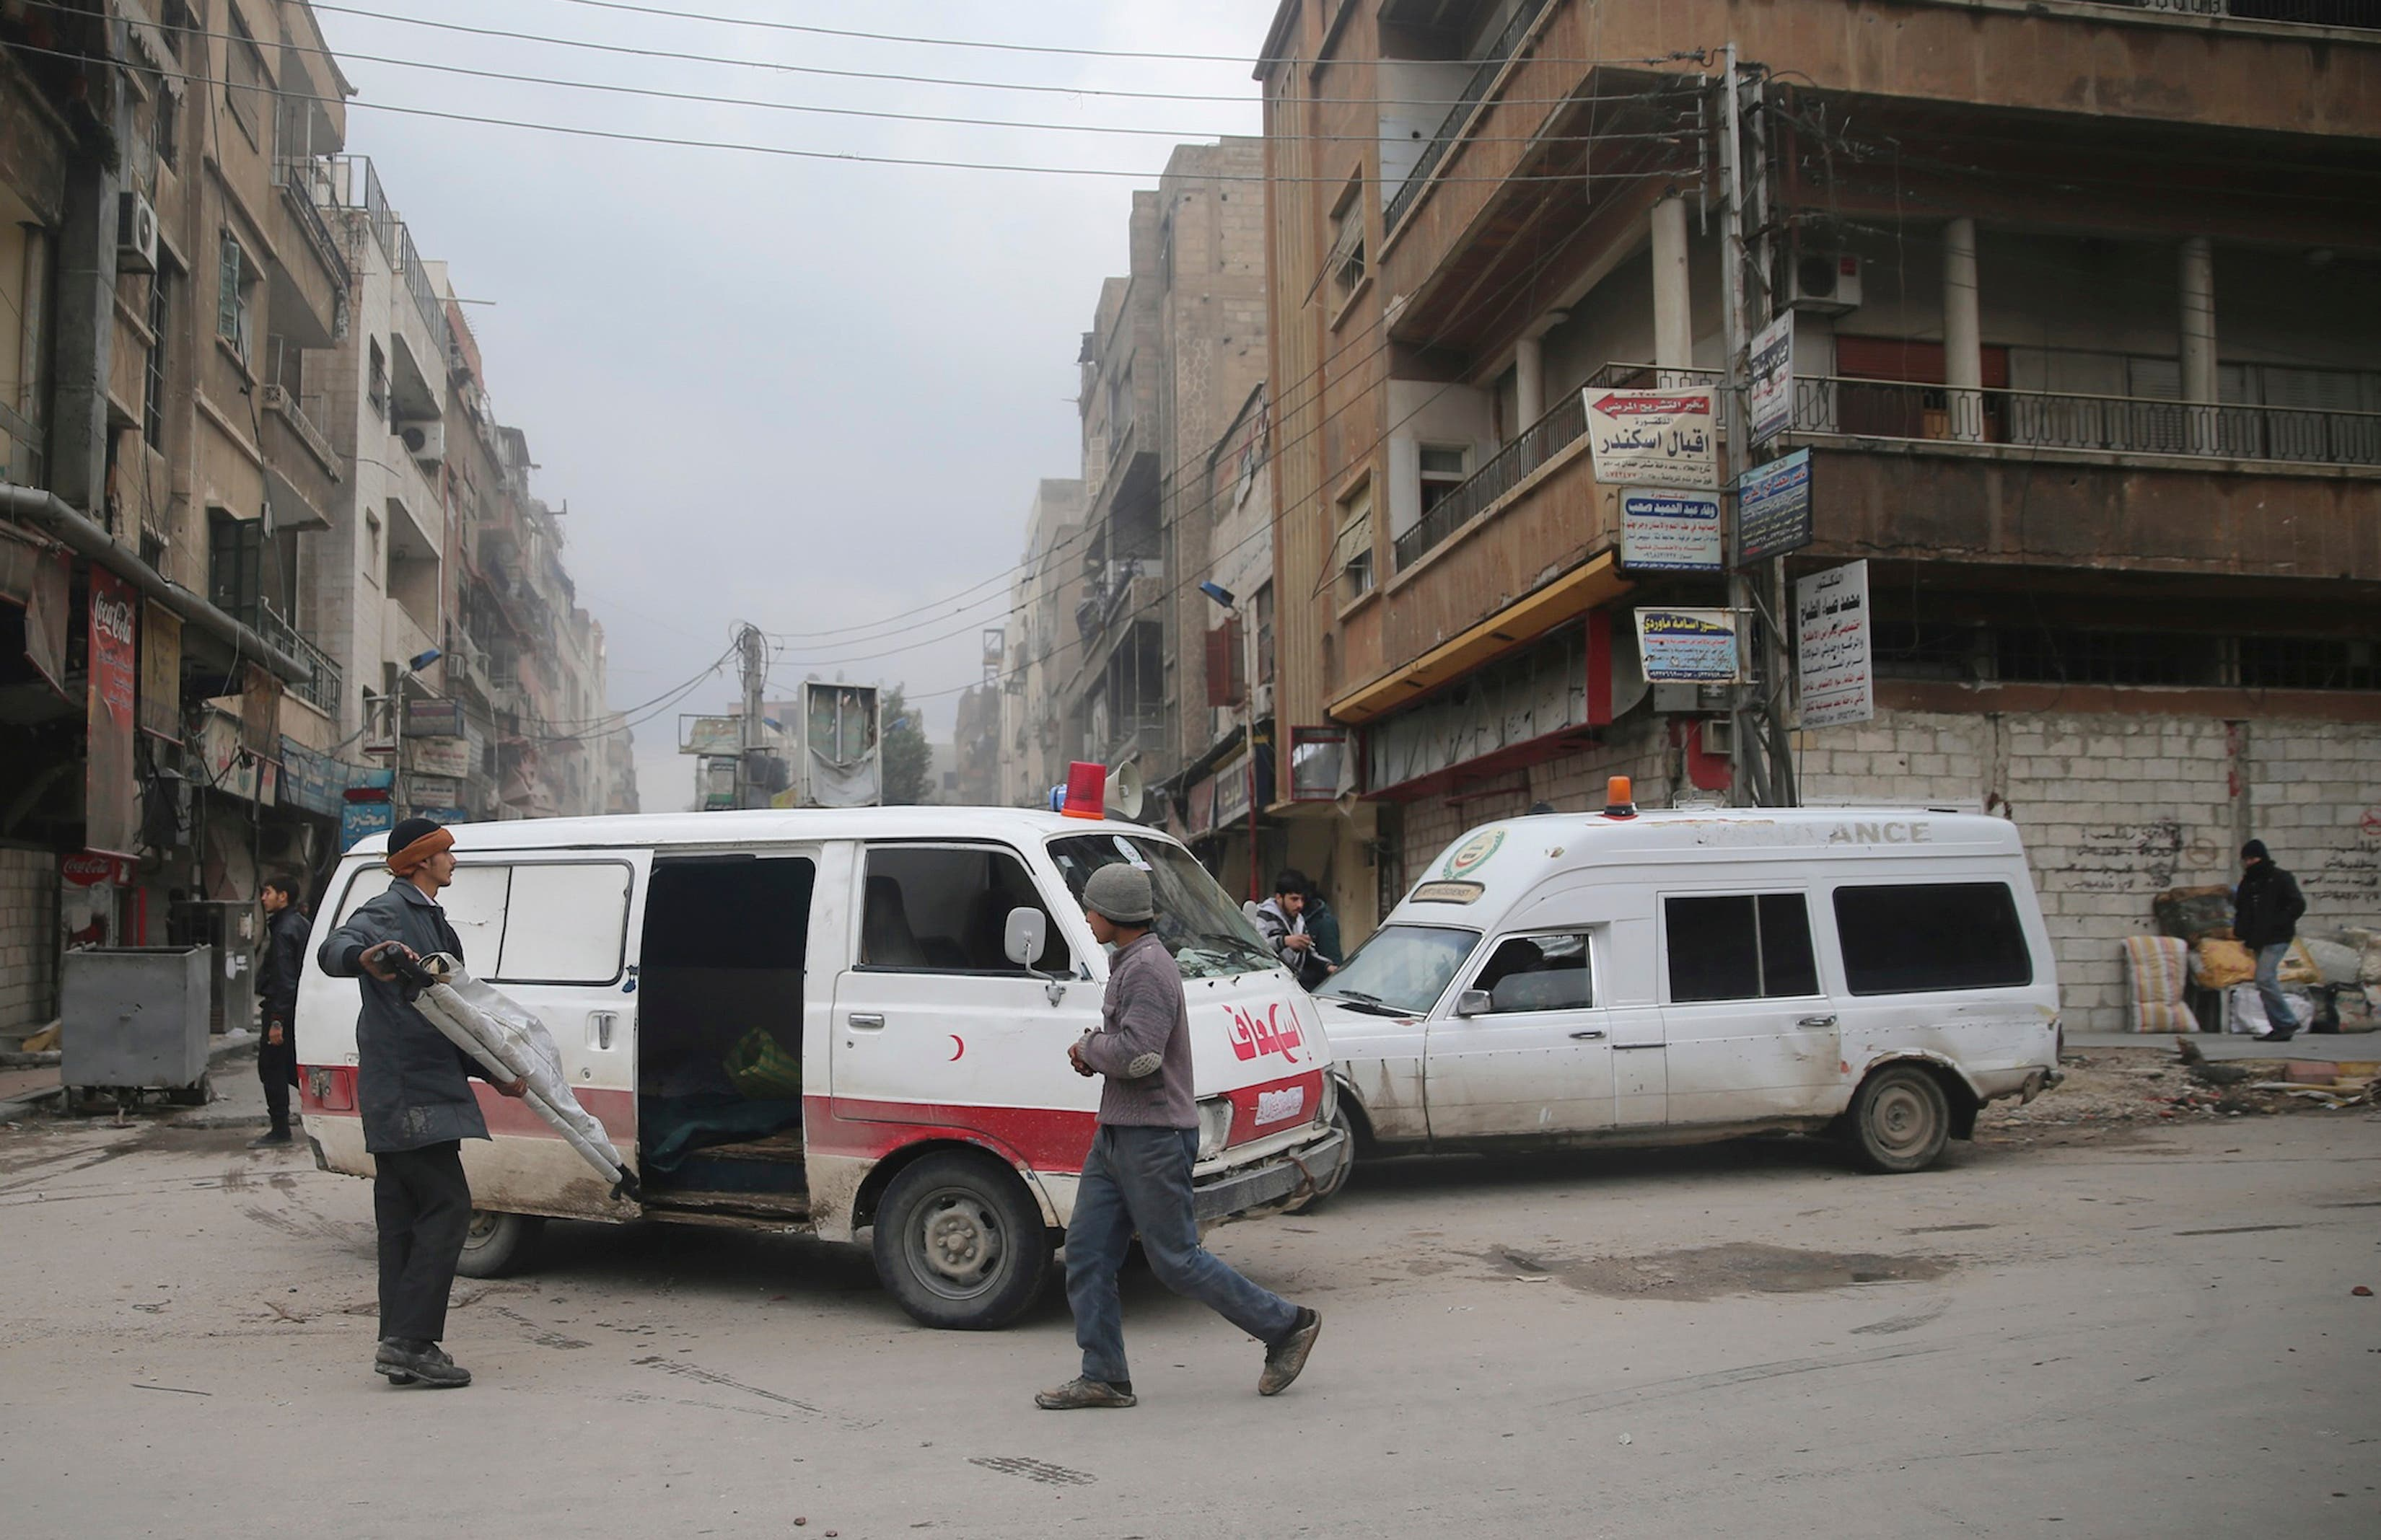 syria ambulance reuters